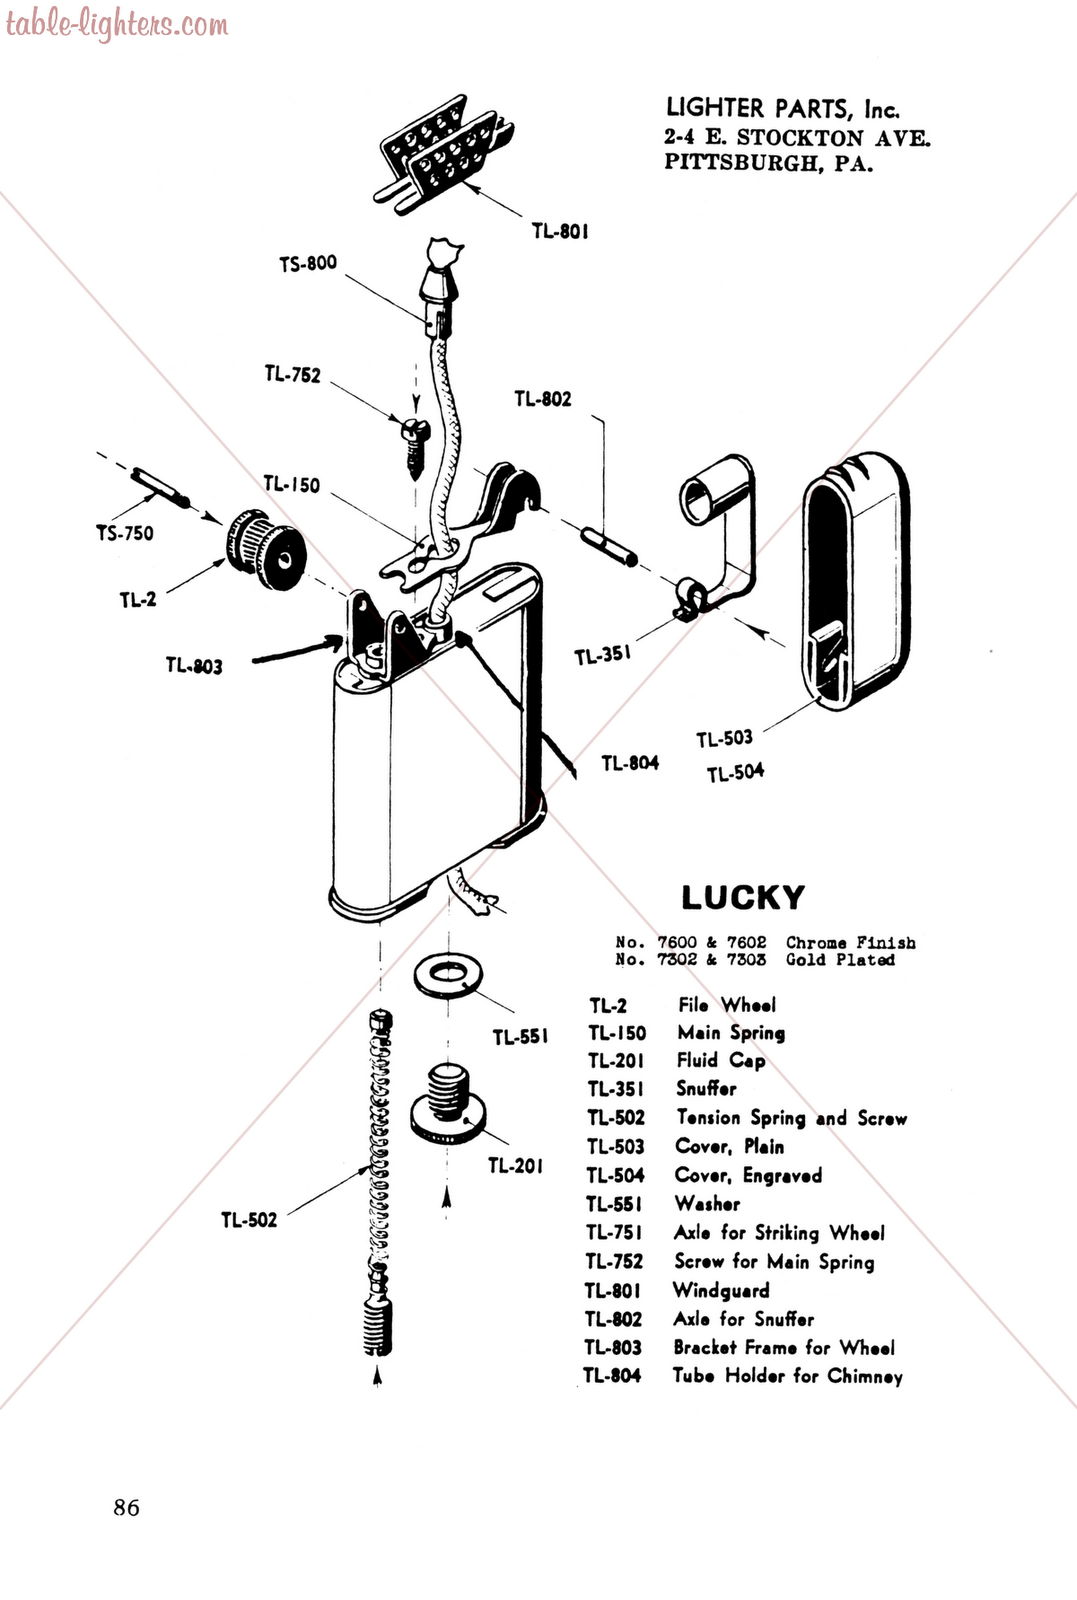 Table Lighters Collectors Guide Lighter Repair Manual